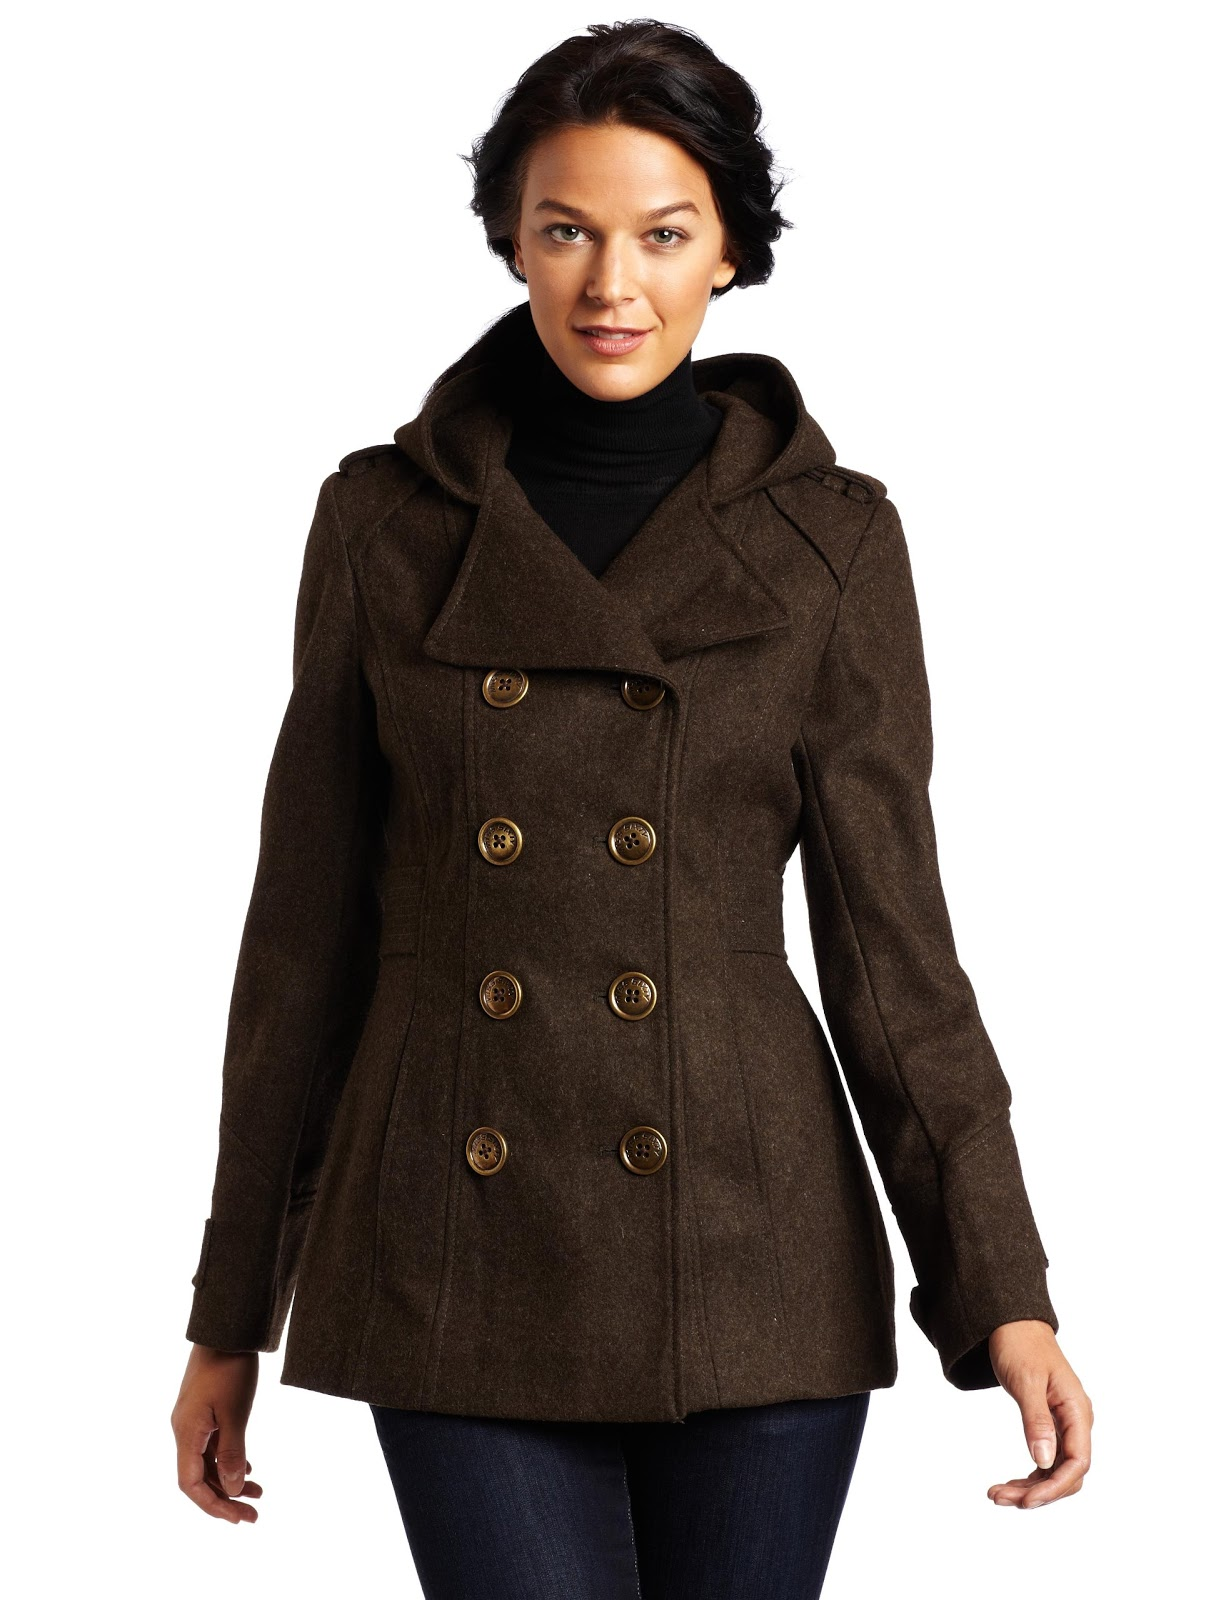 detailing search for clearance best site Lime Green Pea Coats: Green Pea Coats Dollhouse Little Girls ...